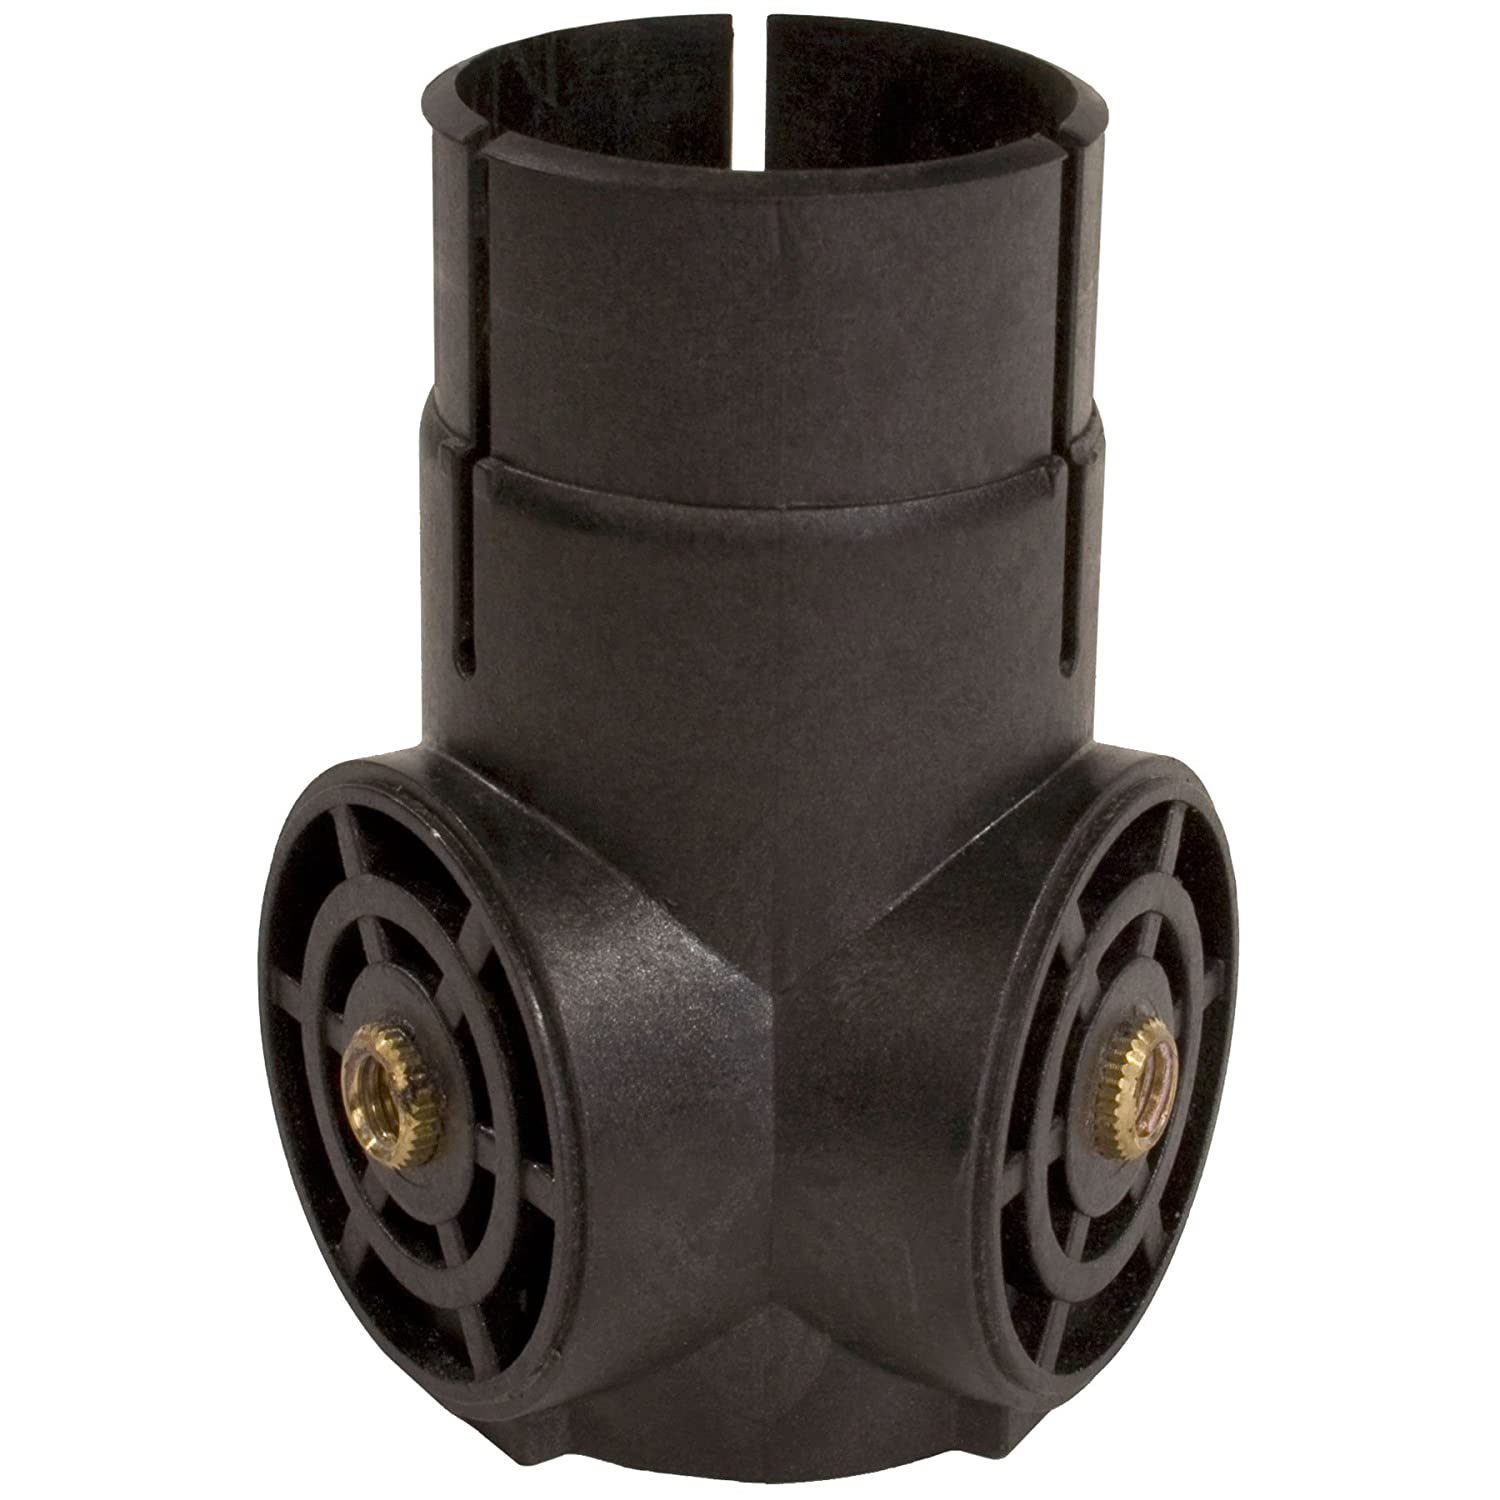 Ultimate Support 13494 Speaker Stand Leg Fitting Ult-4562